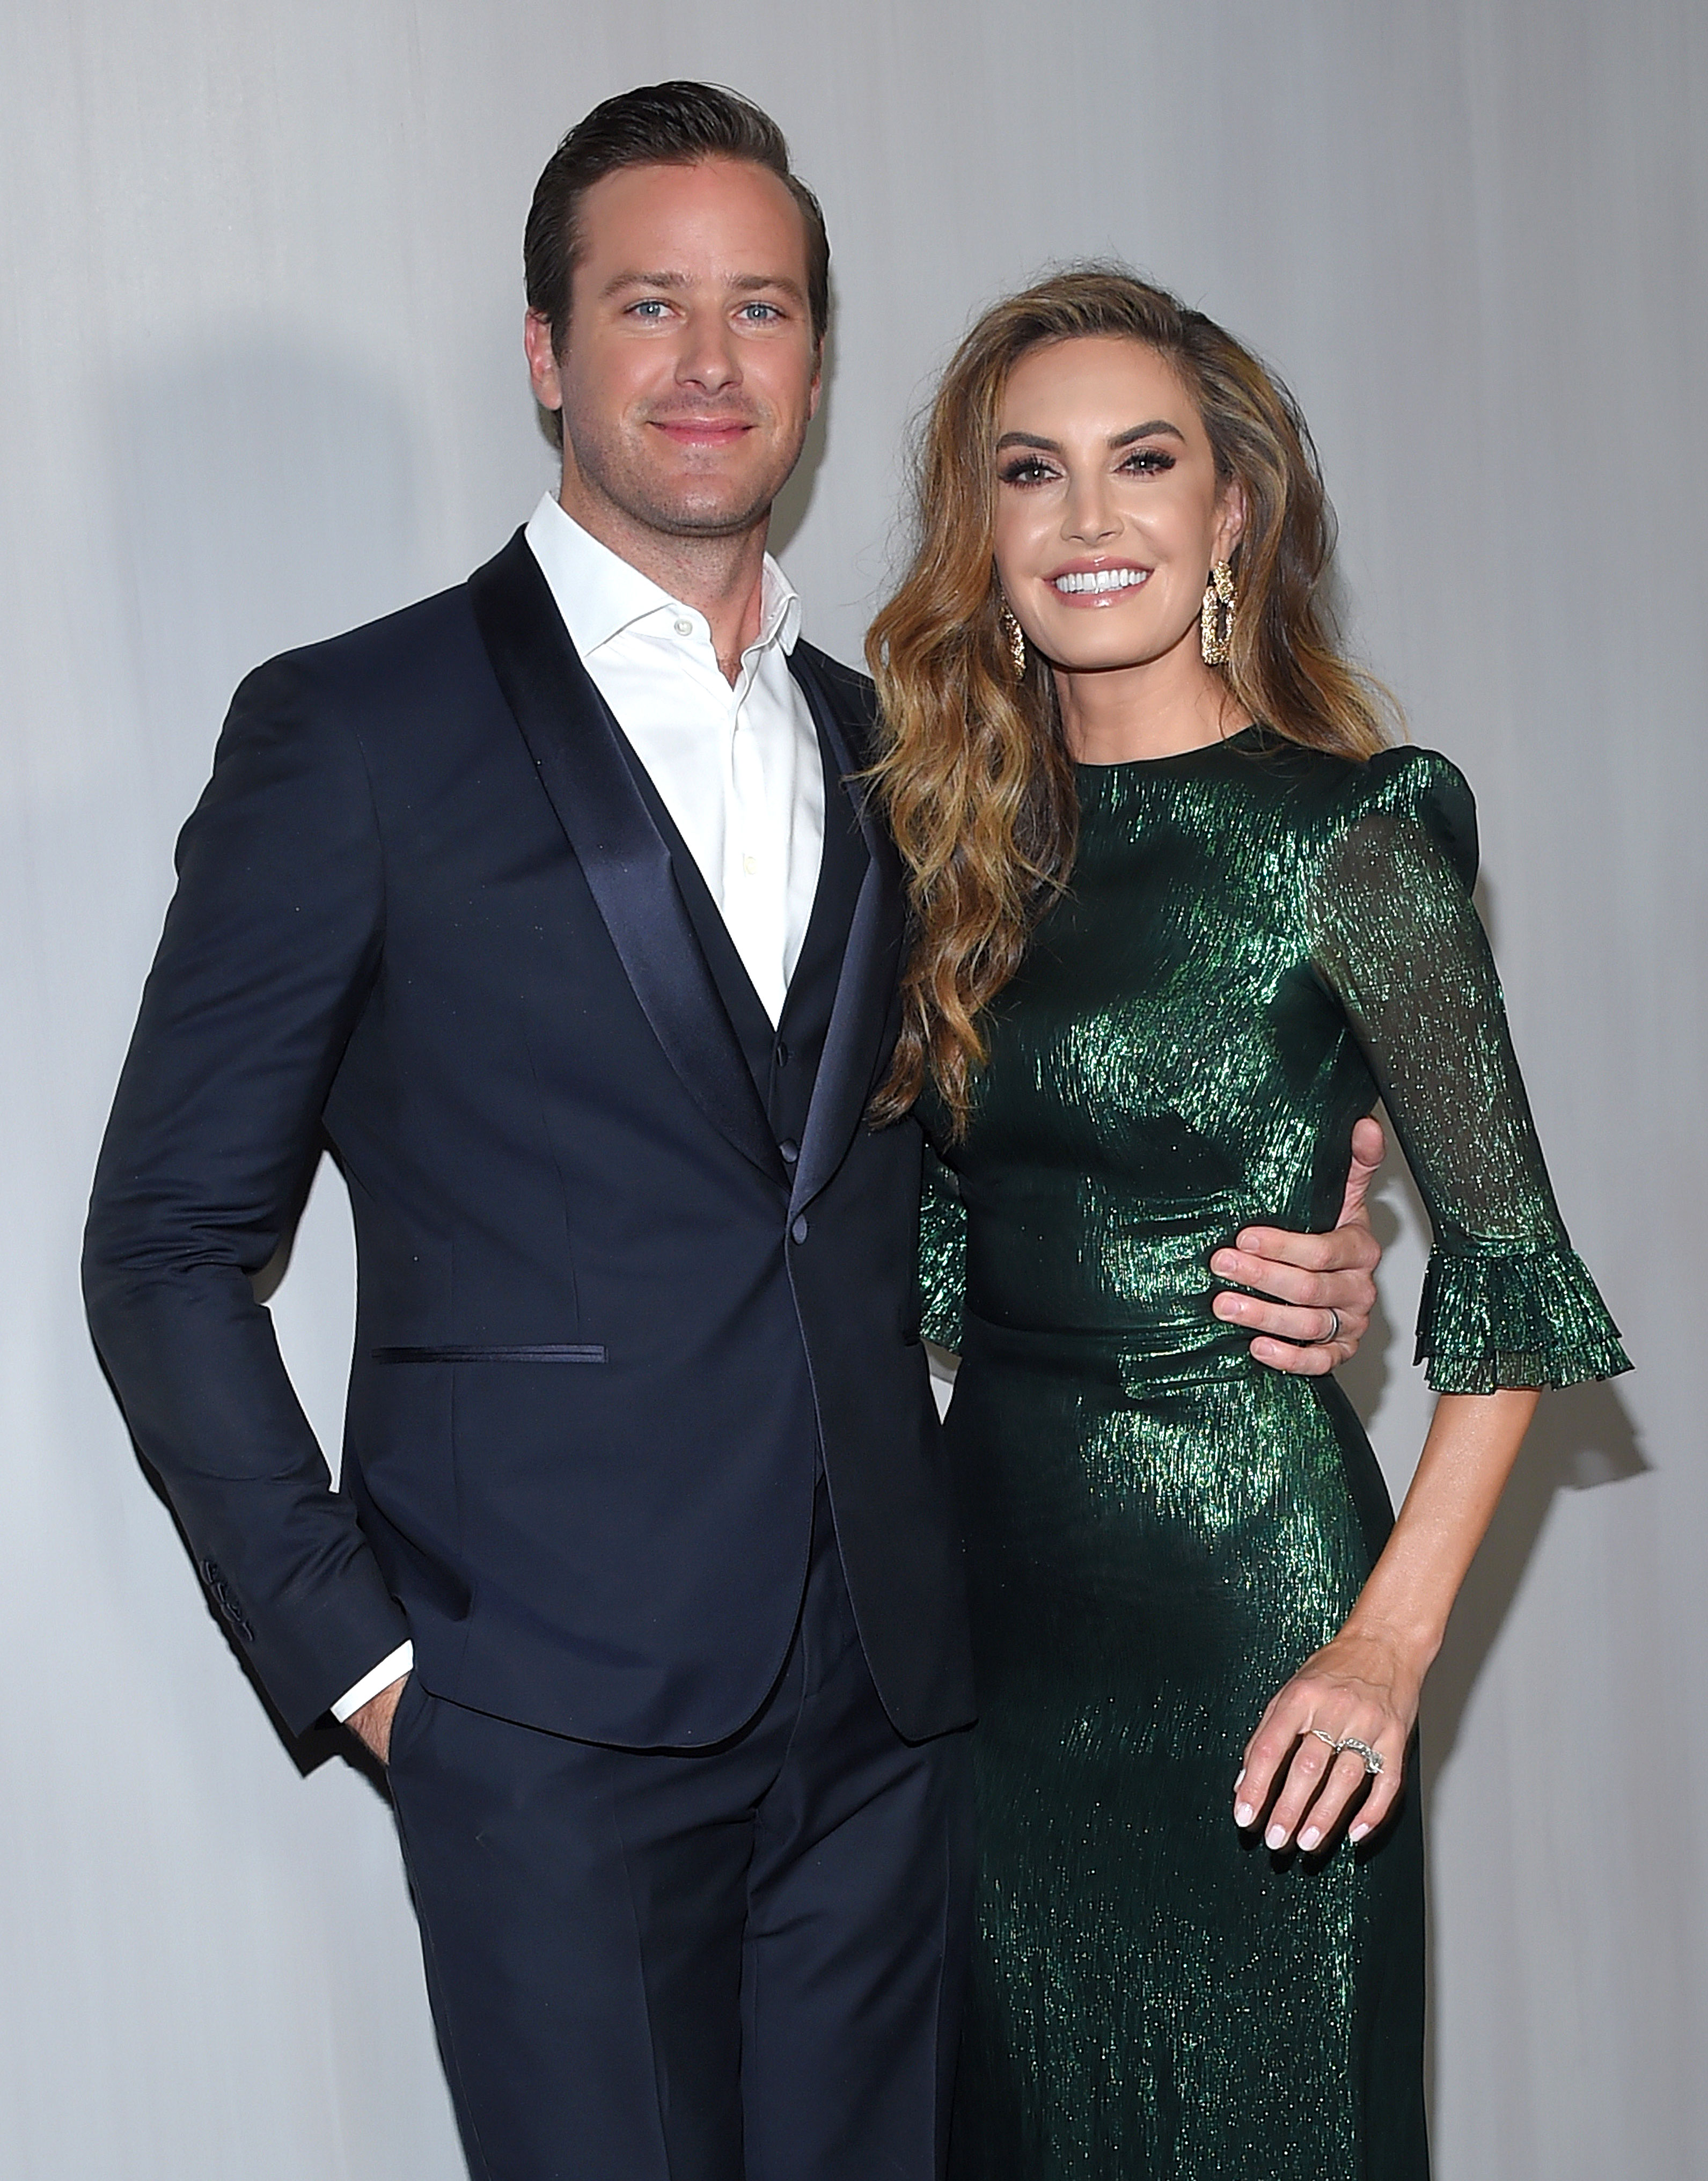 Armie Hammer and Elizabeth Chambers' Holiday Plans - Armie Hammer and Elizabeth Chambers at The Hammer Museum Gala in the Garden 2018 on October 14, 2018 in Los Angeles, California.